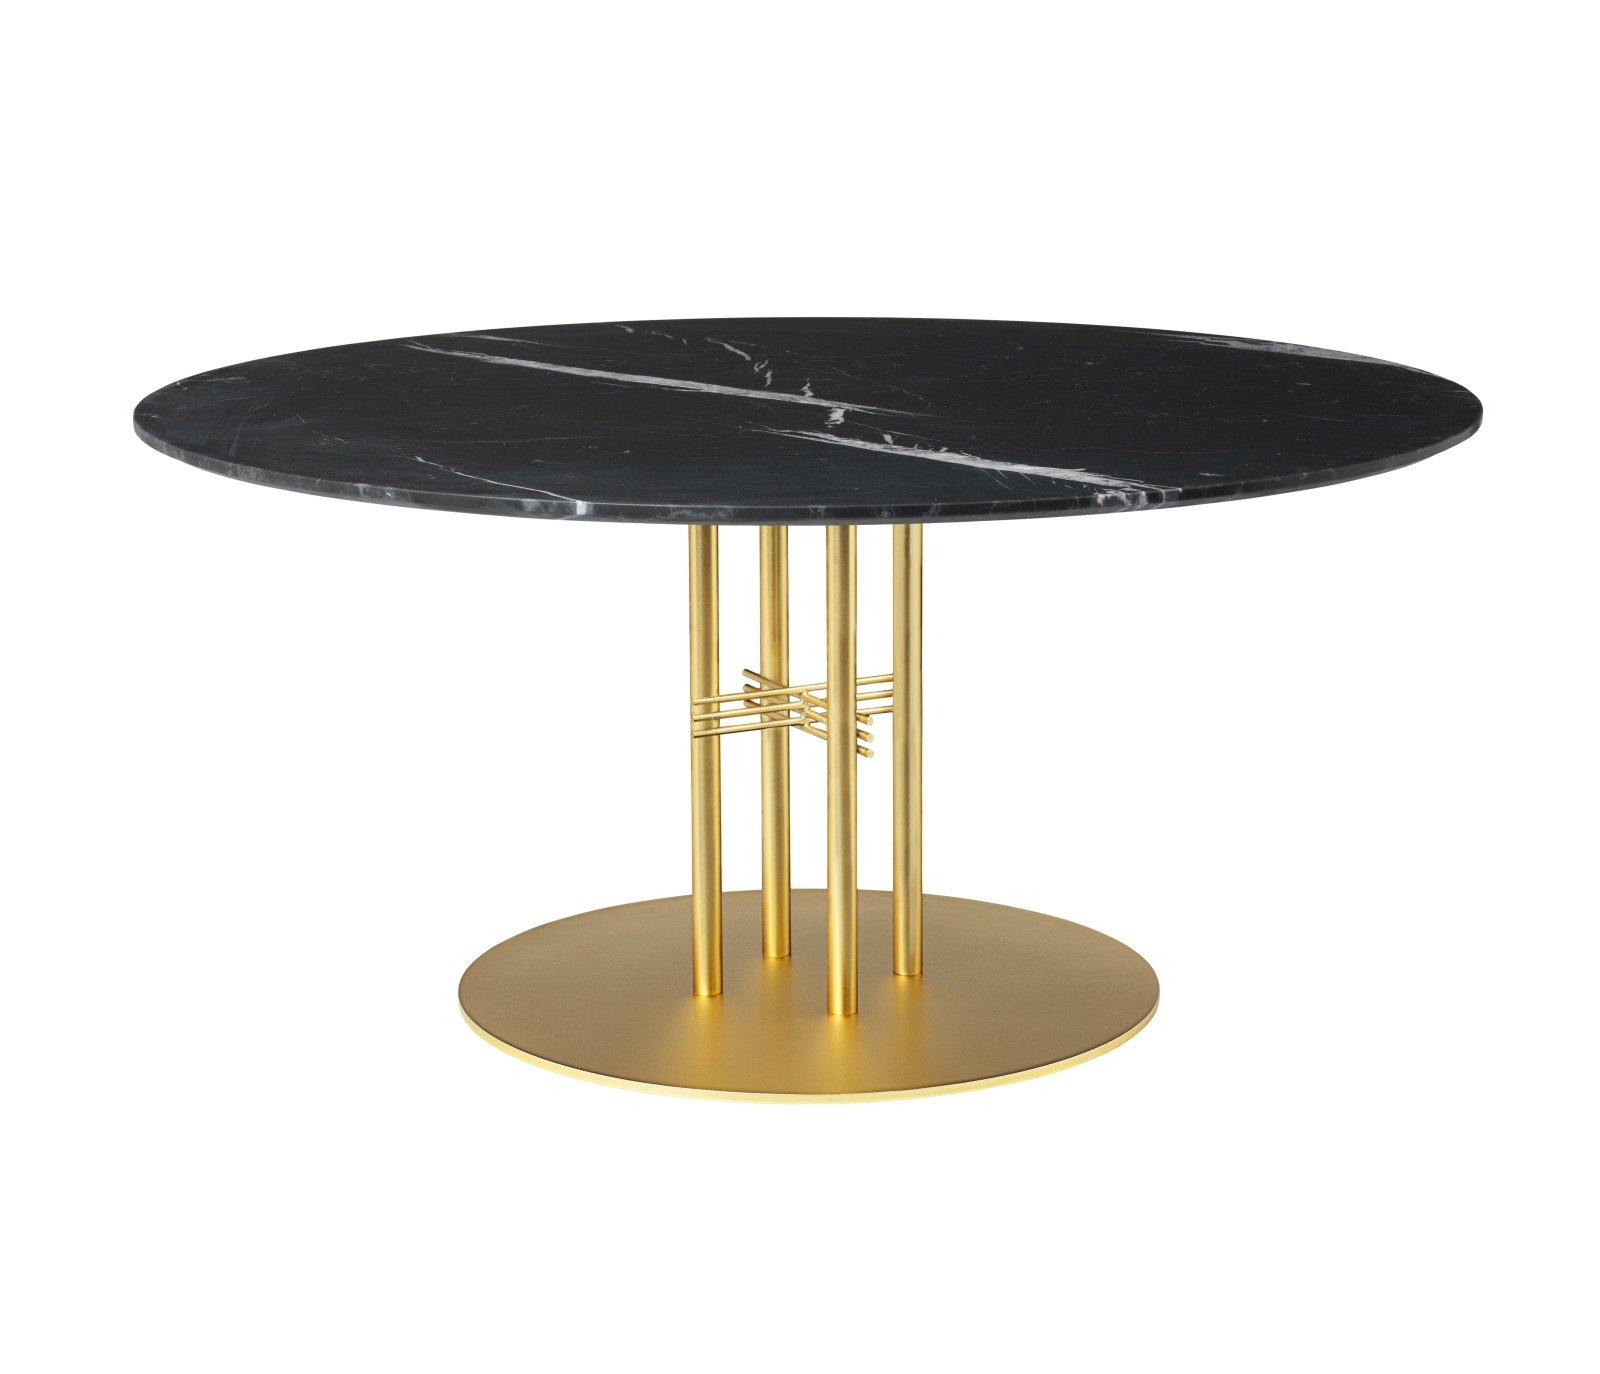 TS Column Lounge Table Marble 0130, Frame Brass, Gubi Marble Nero Marquina